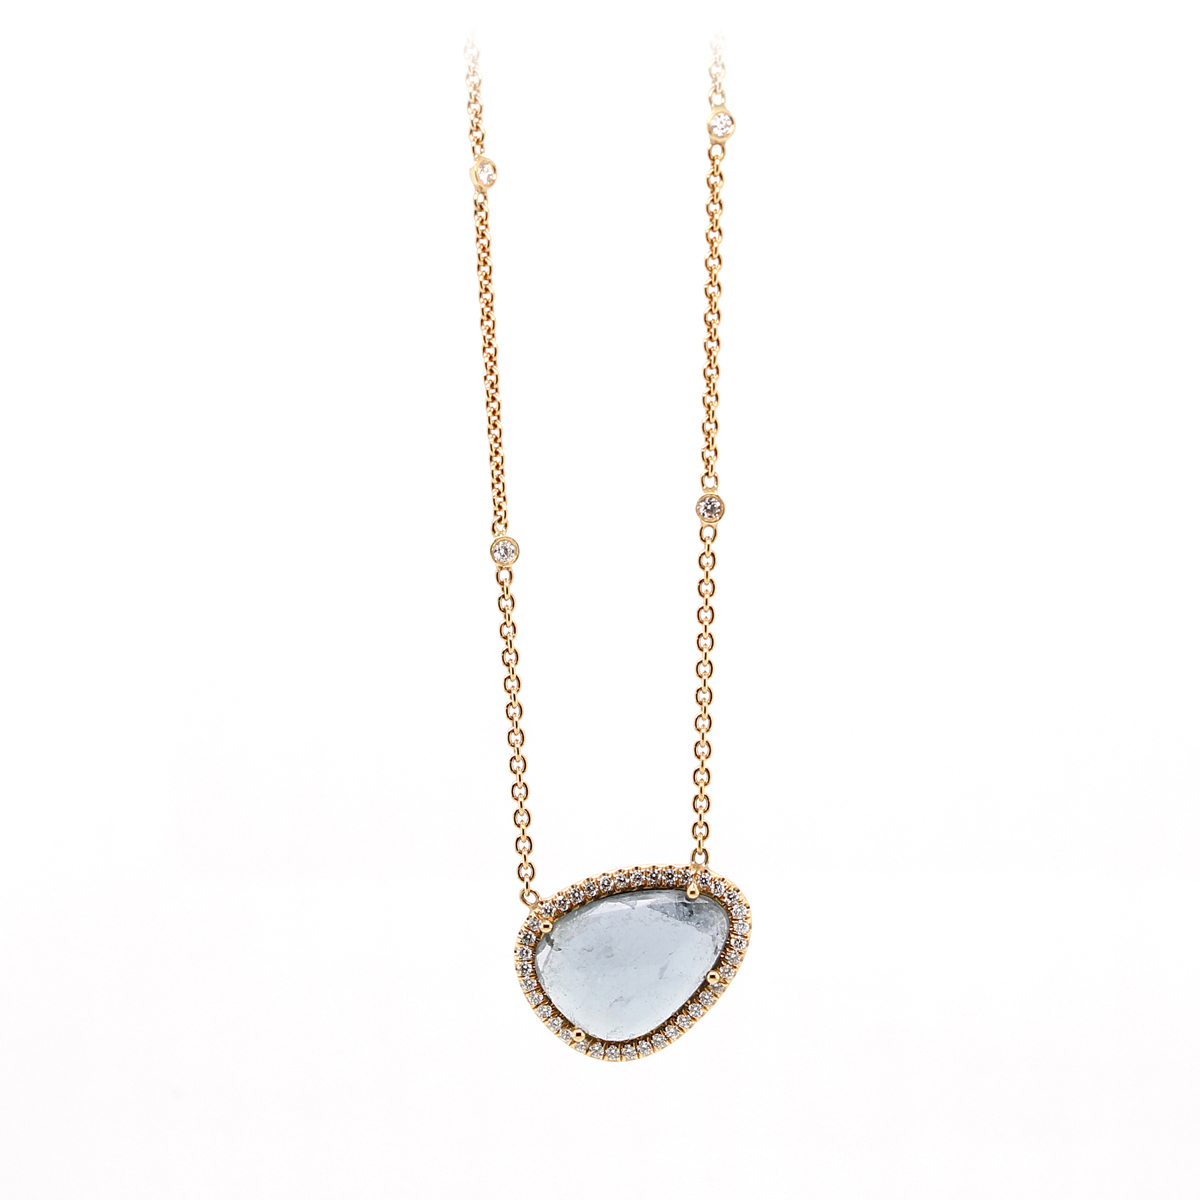 Lauren K 18 Karat Rose Gold Blue Topaz and Diamond Layla Necklace